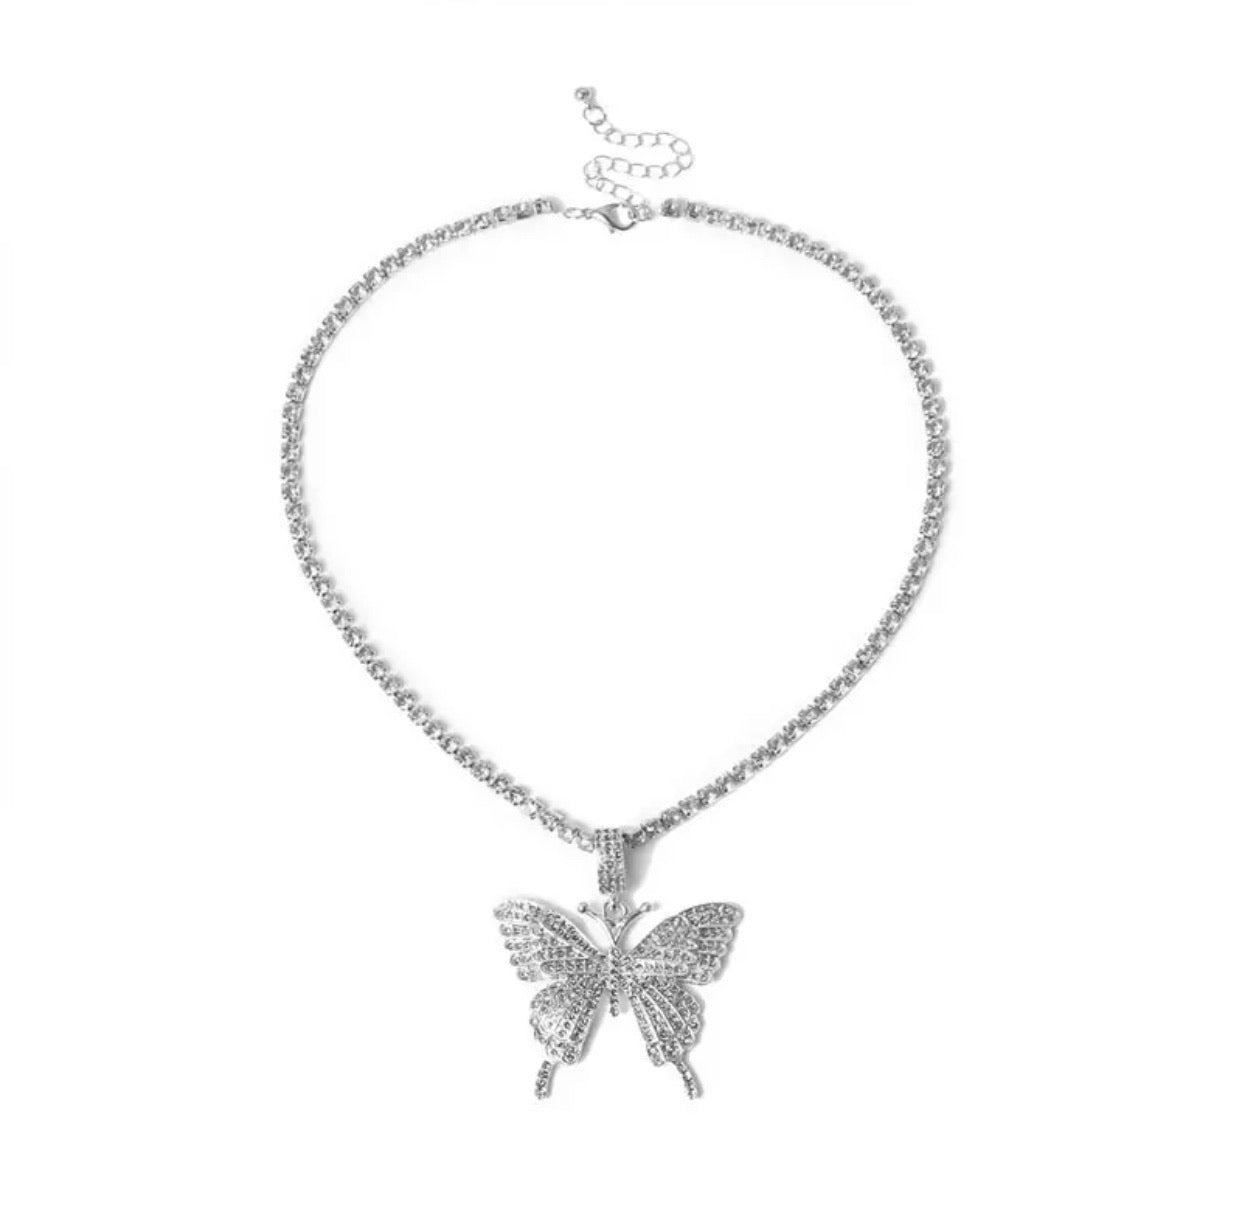 'Icy Butterfly Necklace'